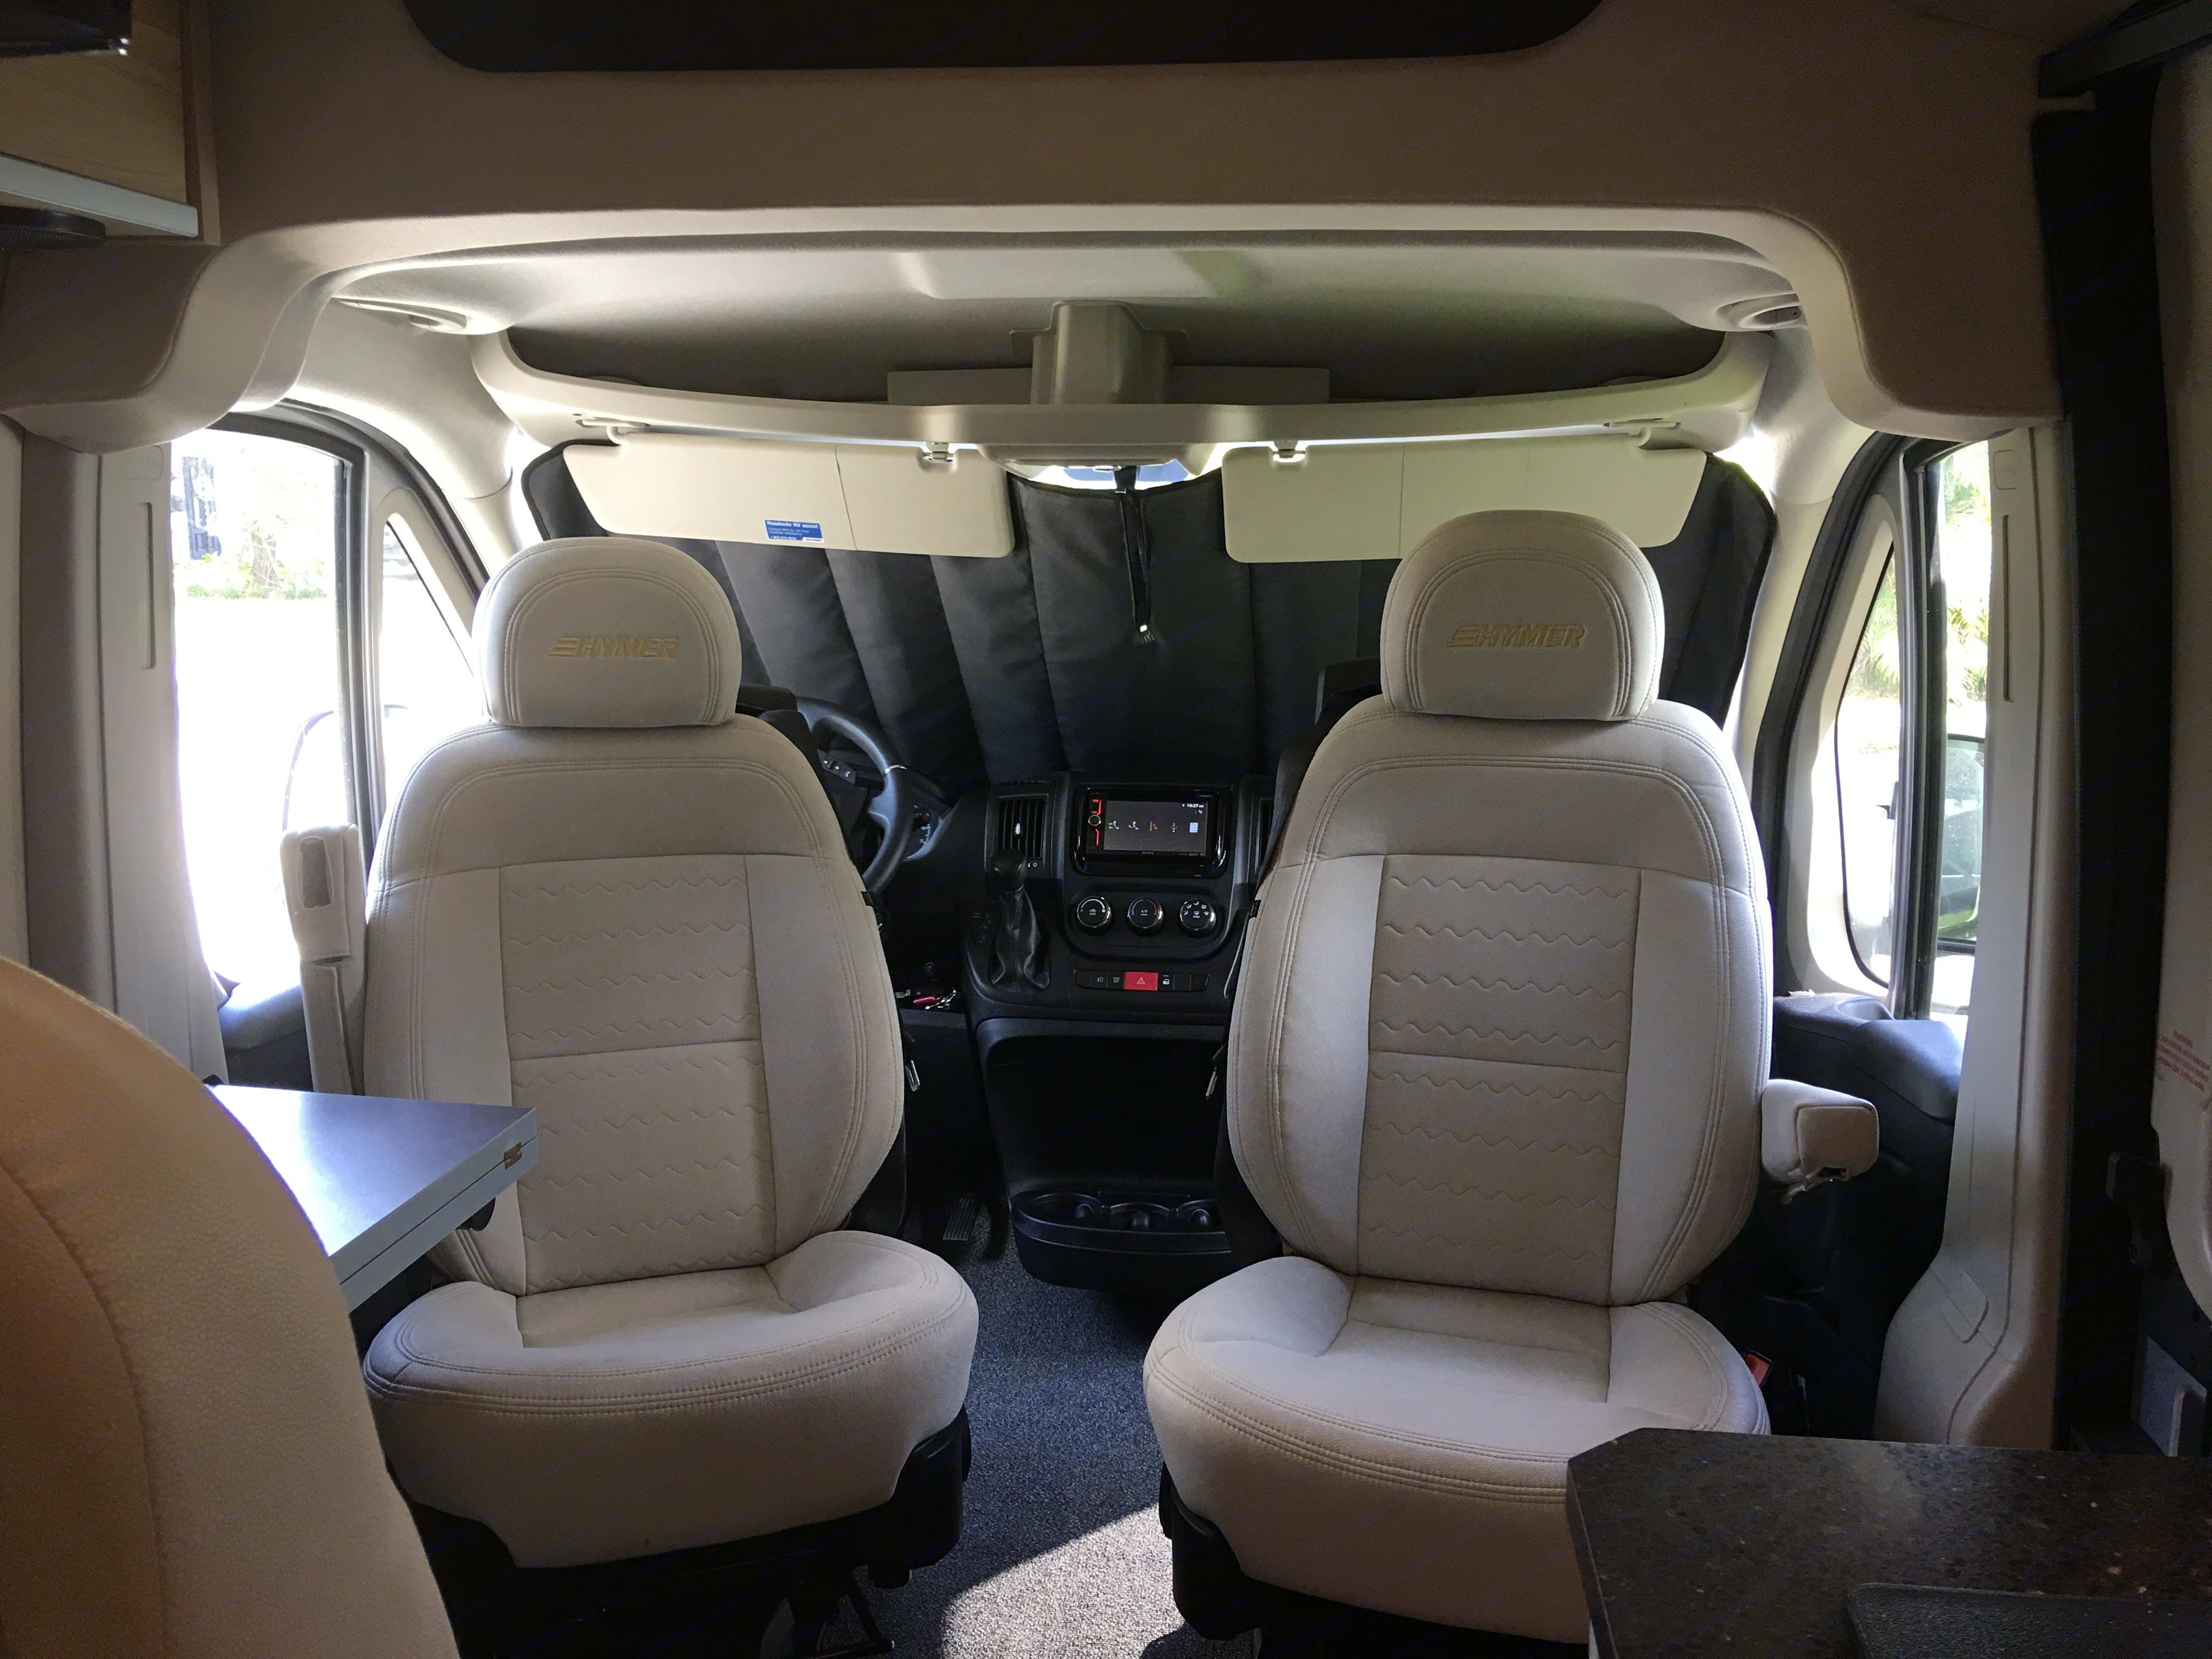 Driver and passenger captain chairs swivel to create lounge area. Full black out shades for front and sides windows keep coach private and cool. . Hymer Aktiv 2017